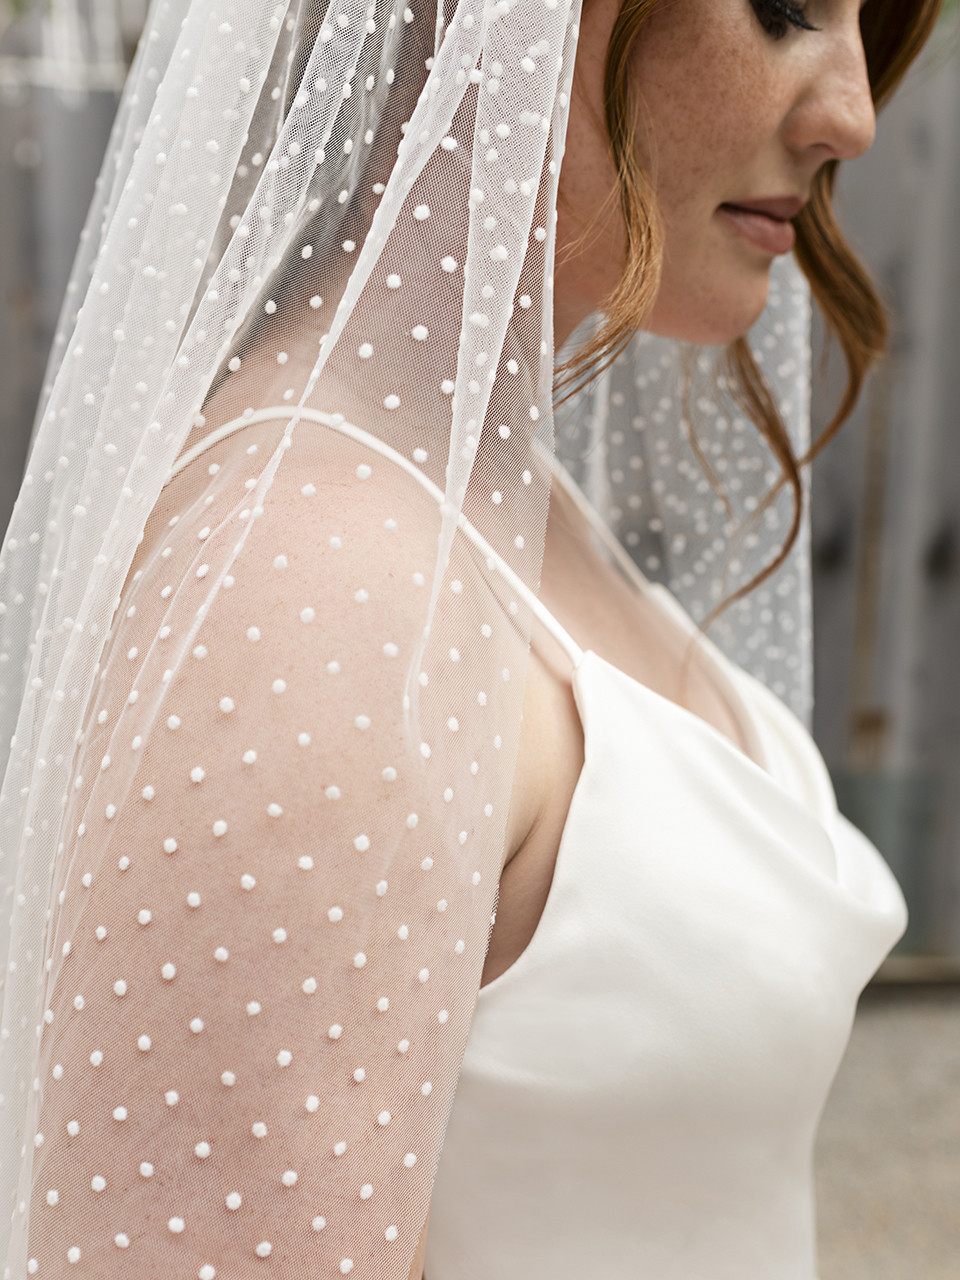 En Vogue Bridal Style V2296SF - English tulle velvet swiss dot veil with raw edge - 41 Inches